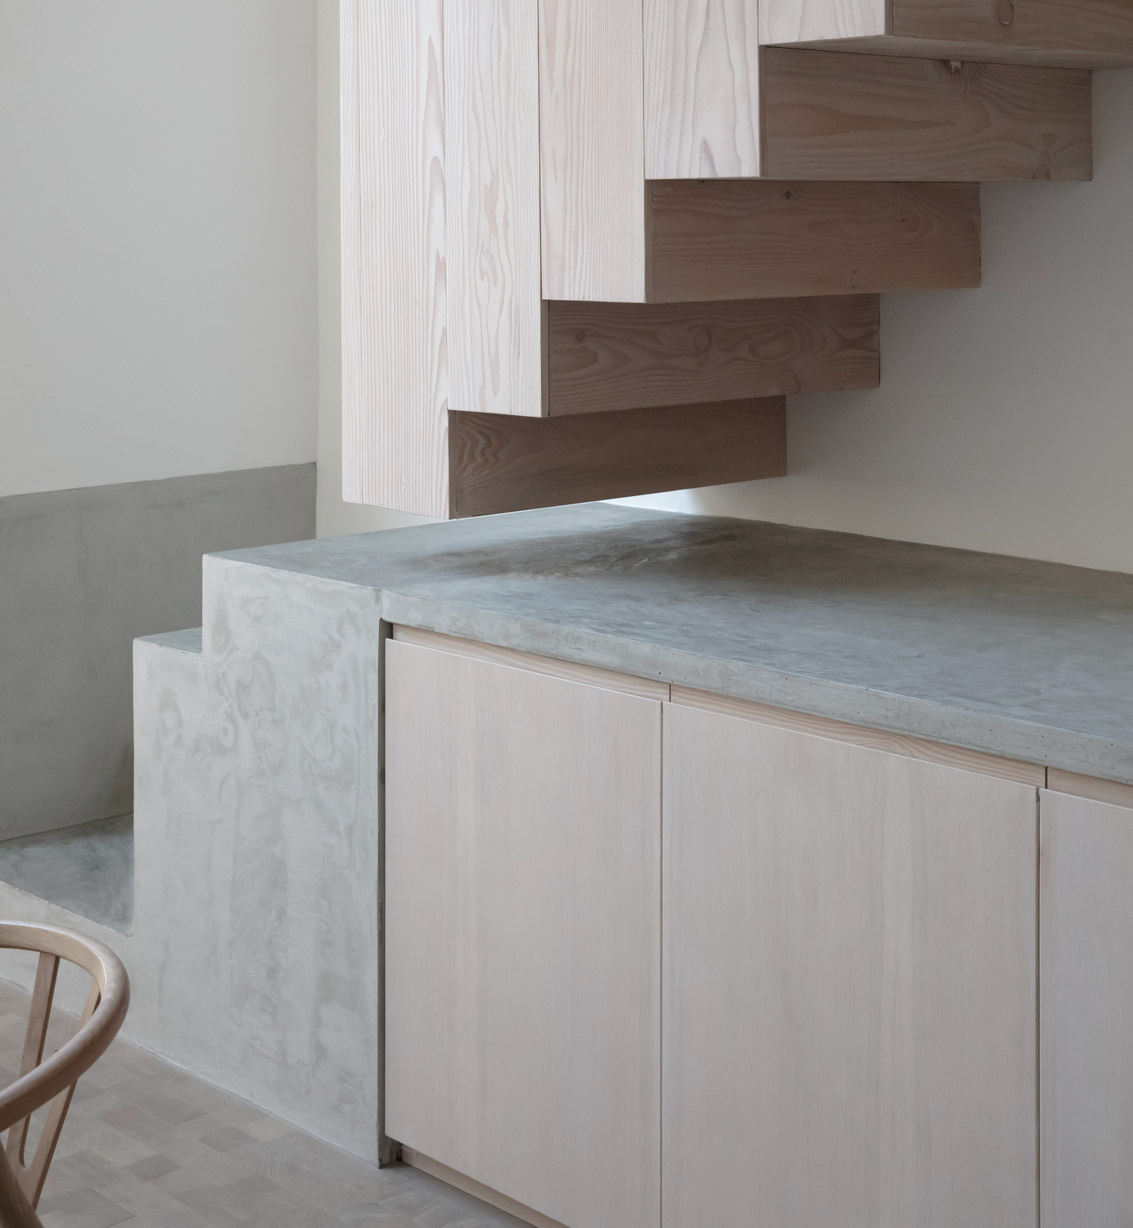 timber stair london house crop3